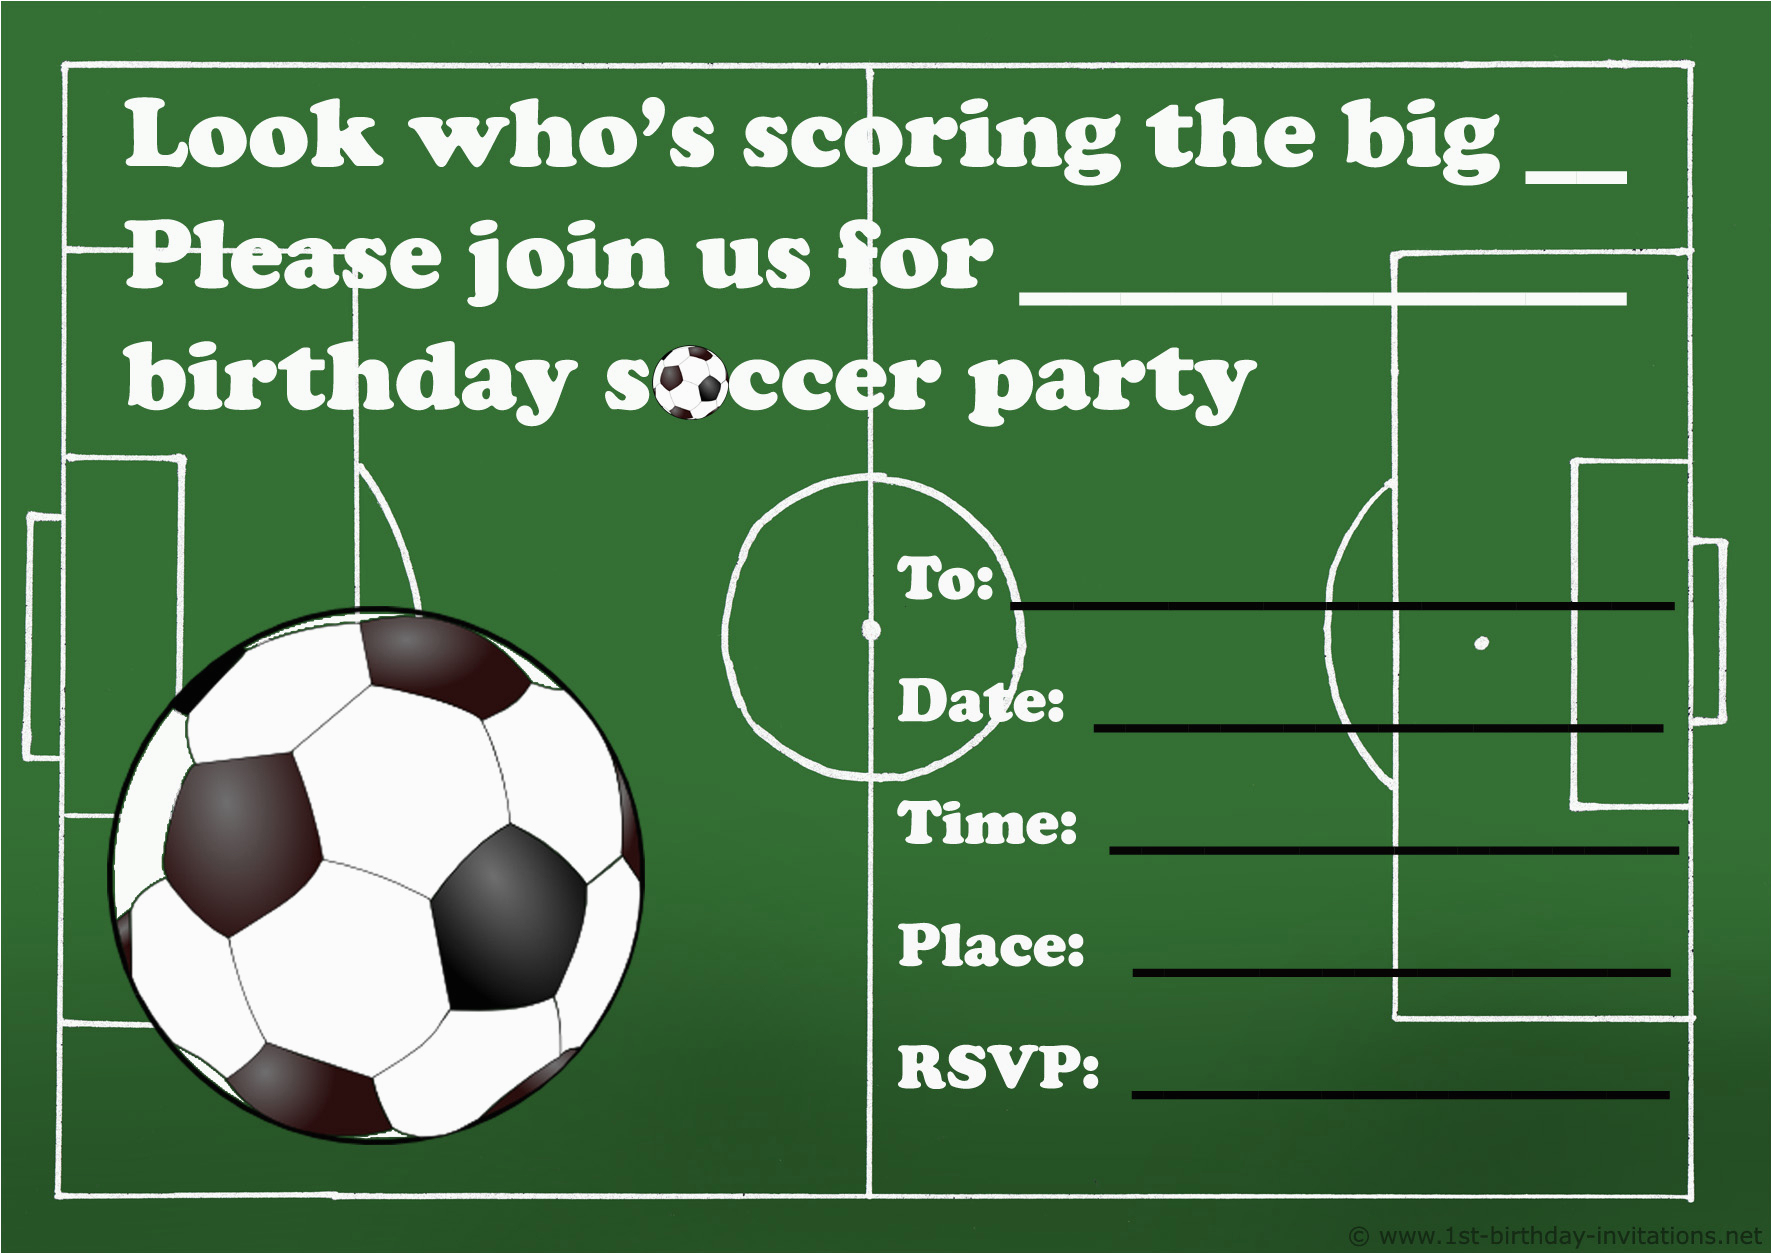 Soccer Invitations For Birthday Party   Birthdaybuzz - Free Printable Soccer Birthday Invitations